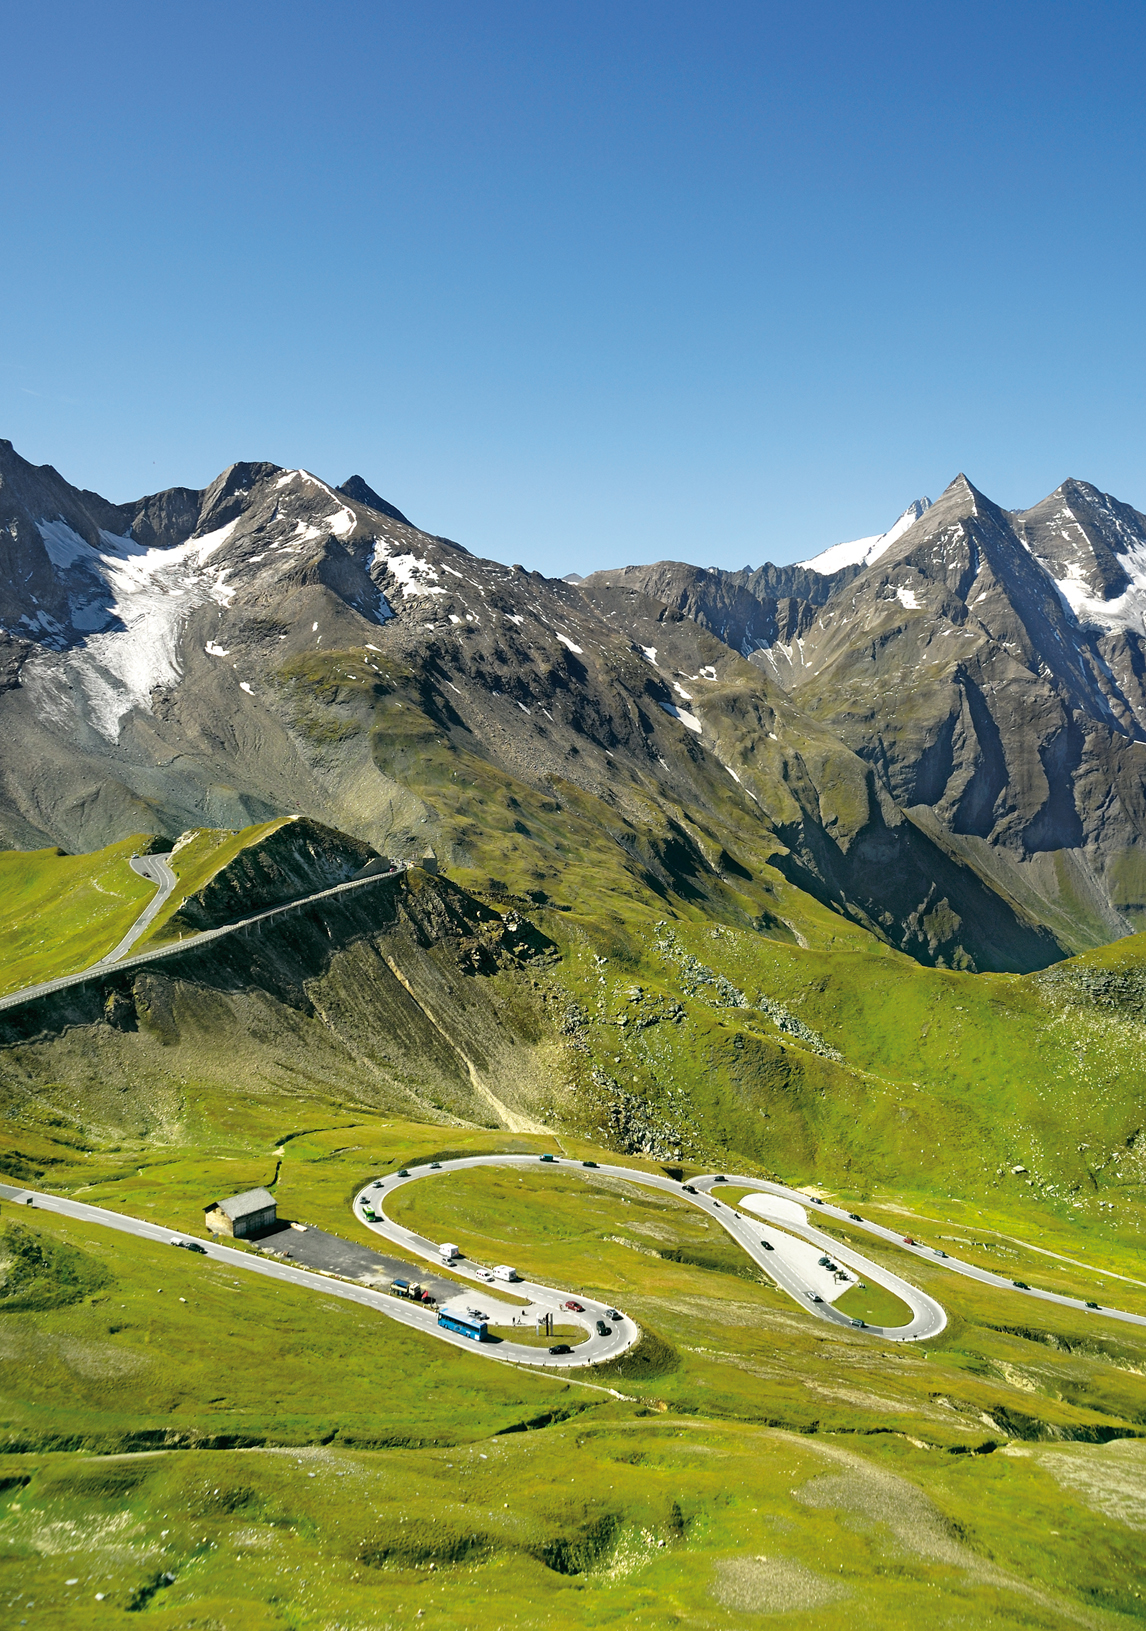 13) The Grossglockner High Alpine Road in Austria 2